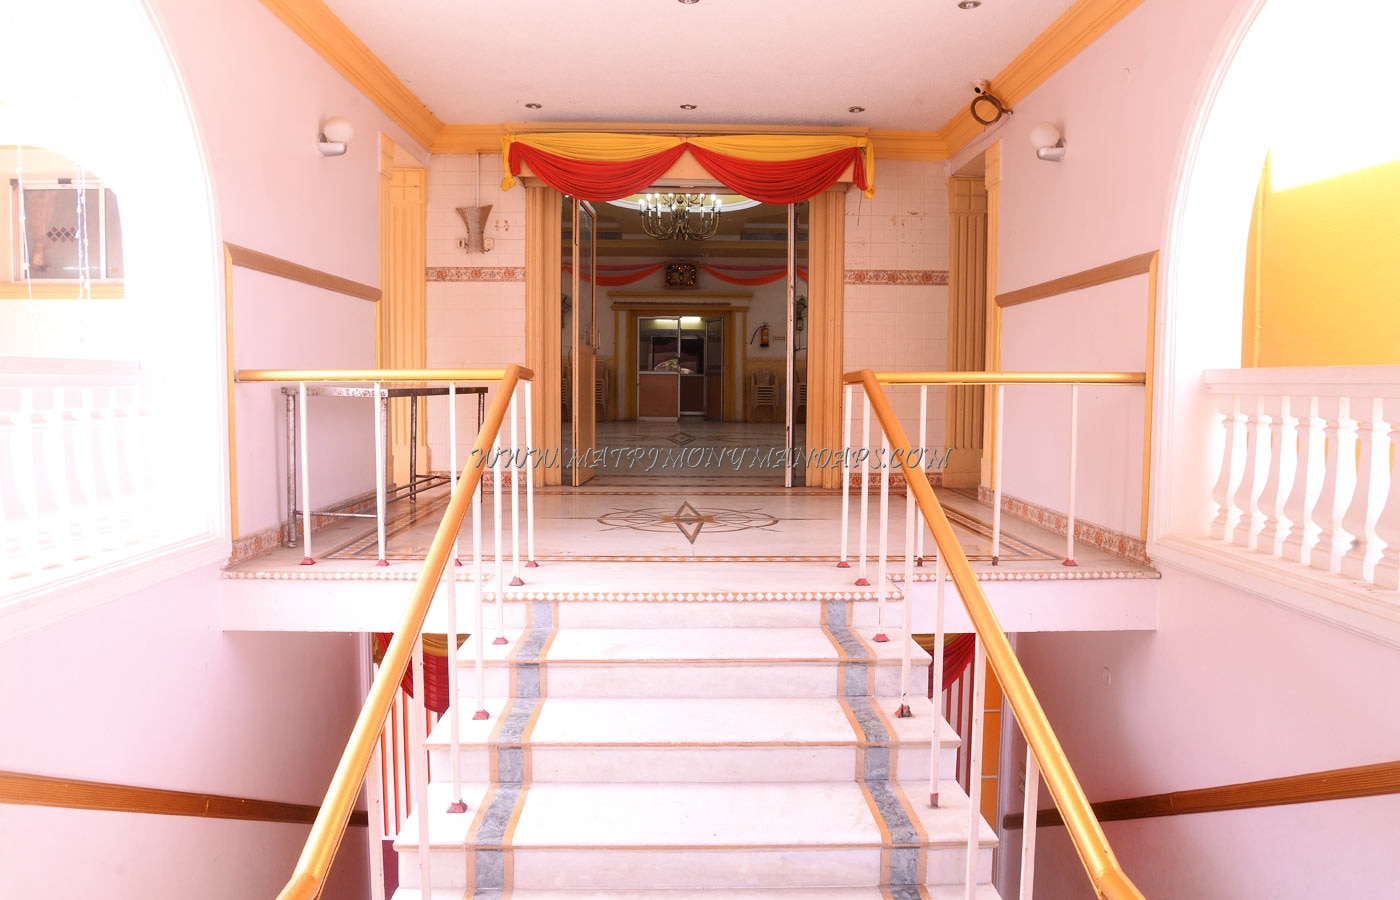 Find the availability of the New GG Mahal  (A/C) in Arumbakkam, Chennai and avail special offers